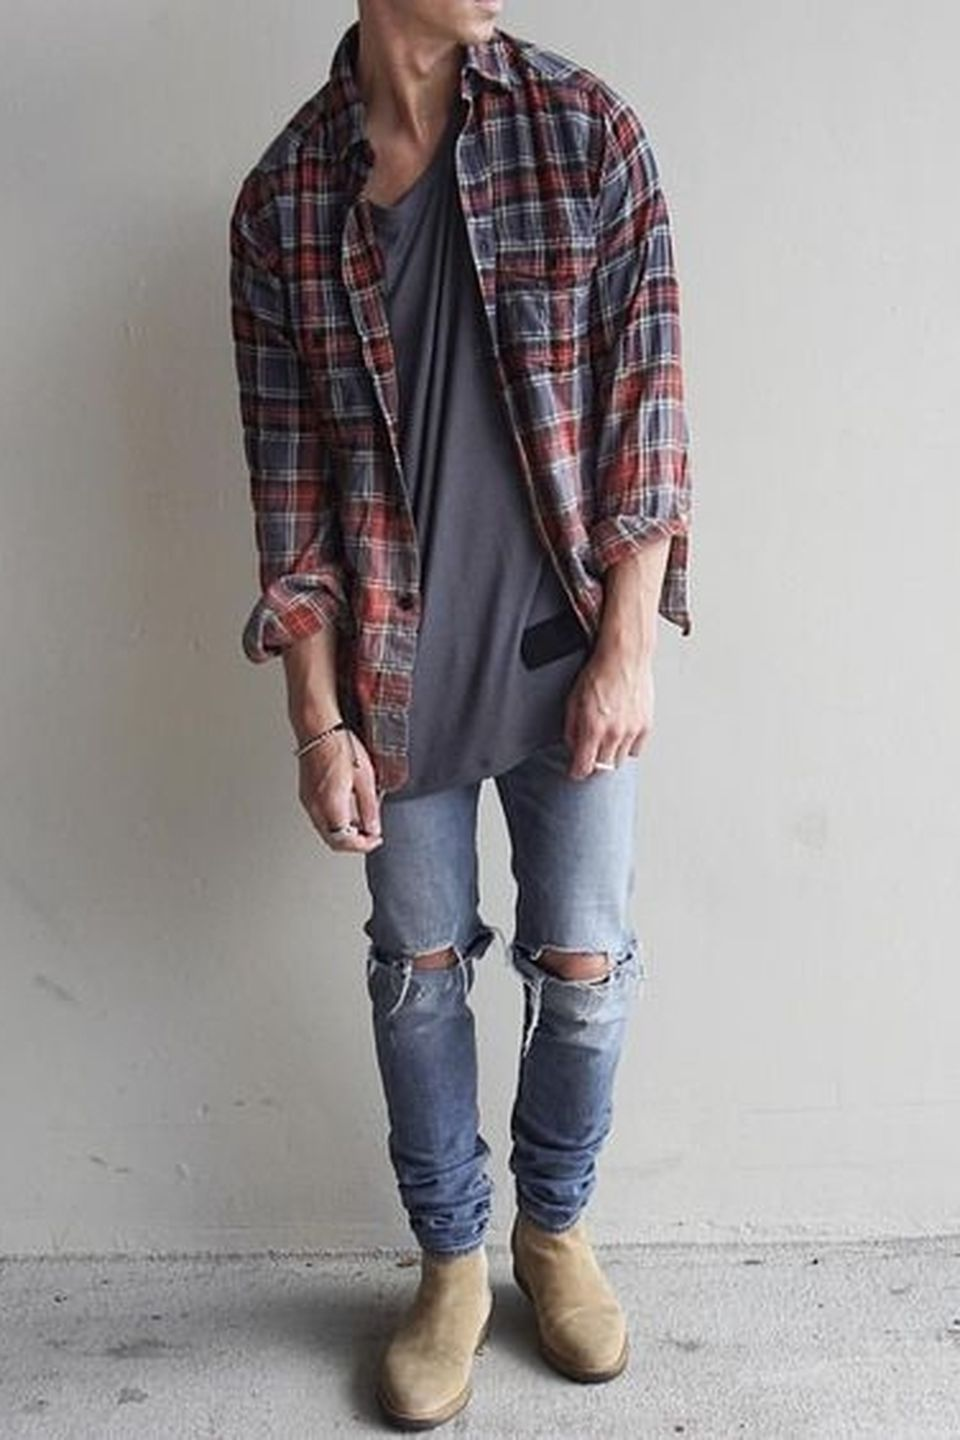 Casual Indie Mens Fashion Outfits Style 8: Casual Indie Mens Fashion Outfits Style 22